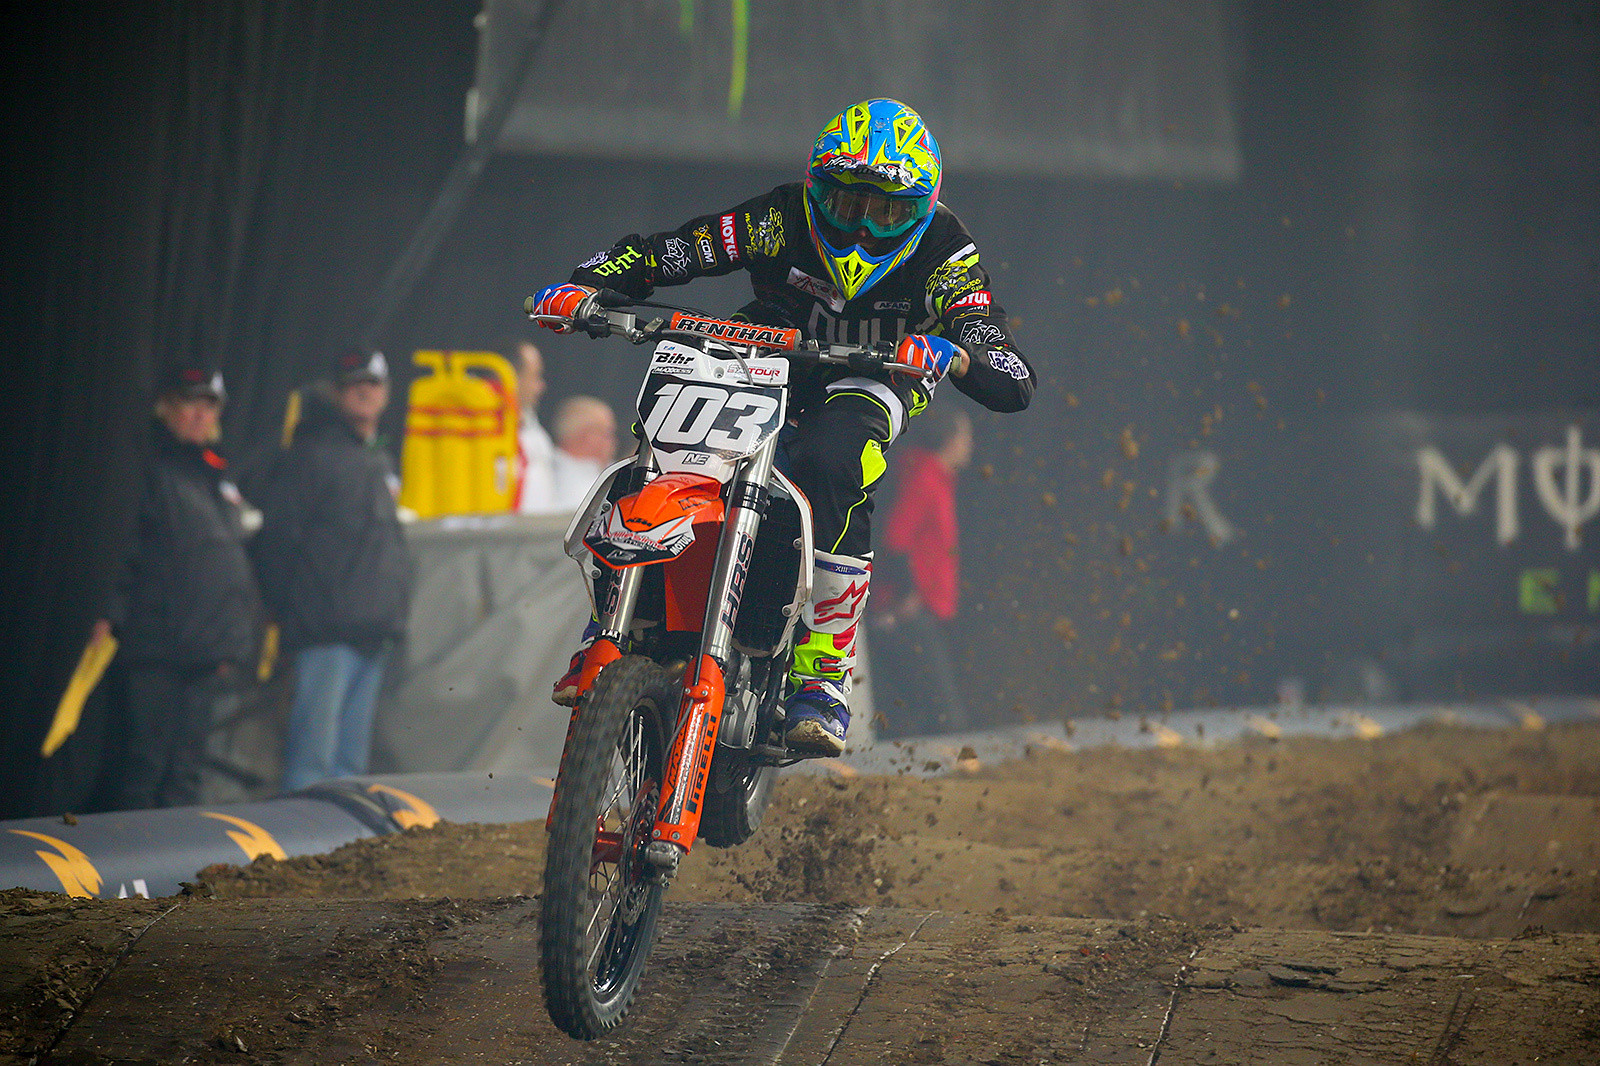 Dan Houzet - Photo Gallery: Saturday at the Paris-Lille Supercross - Motocross Pictures - Vital MX